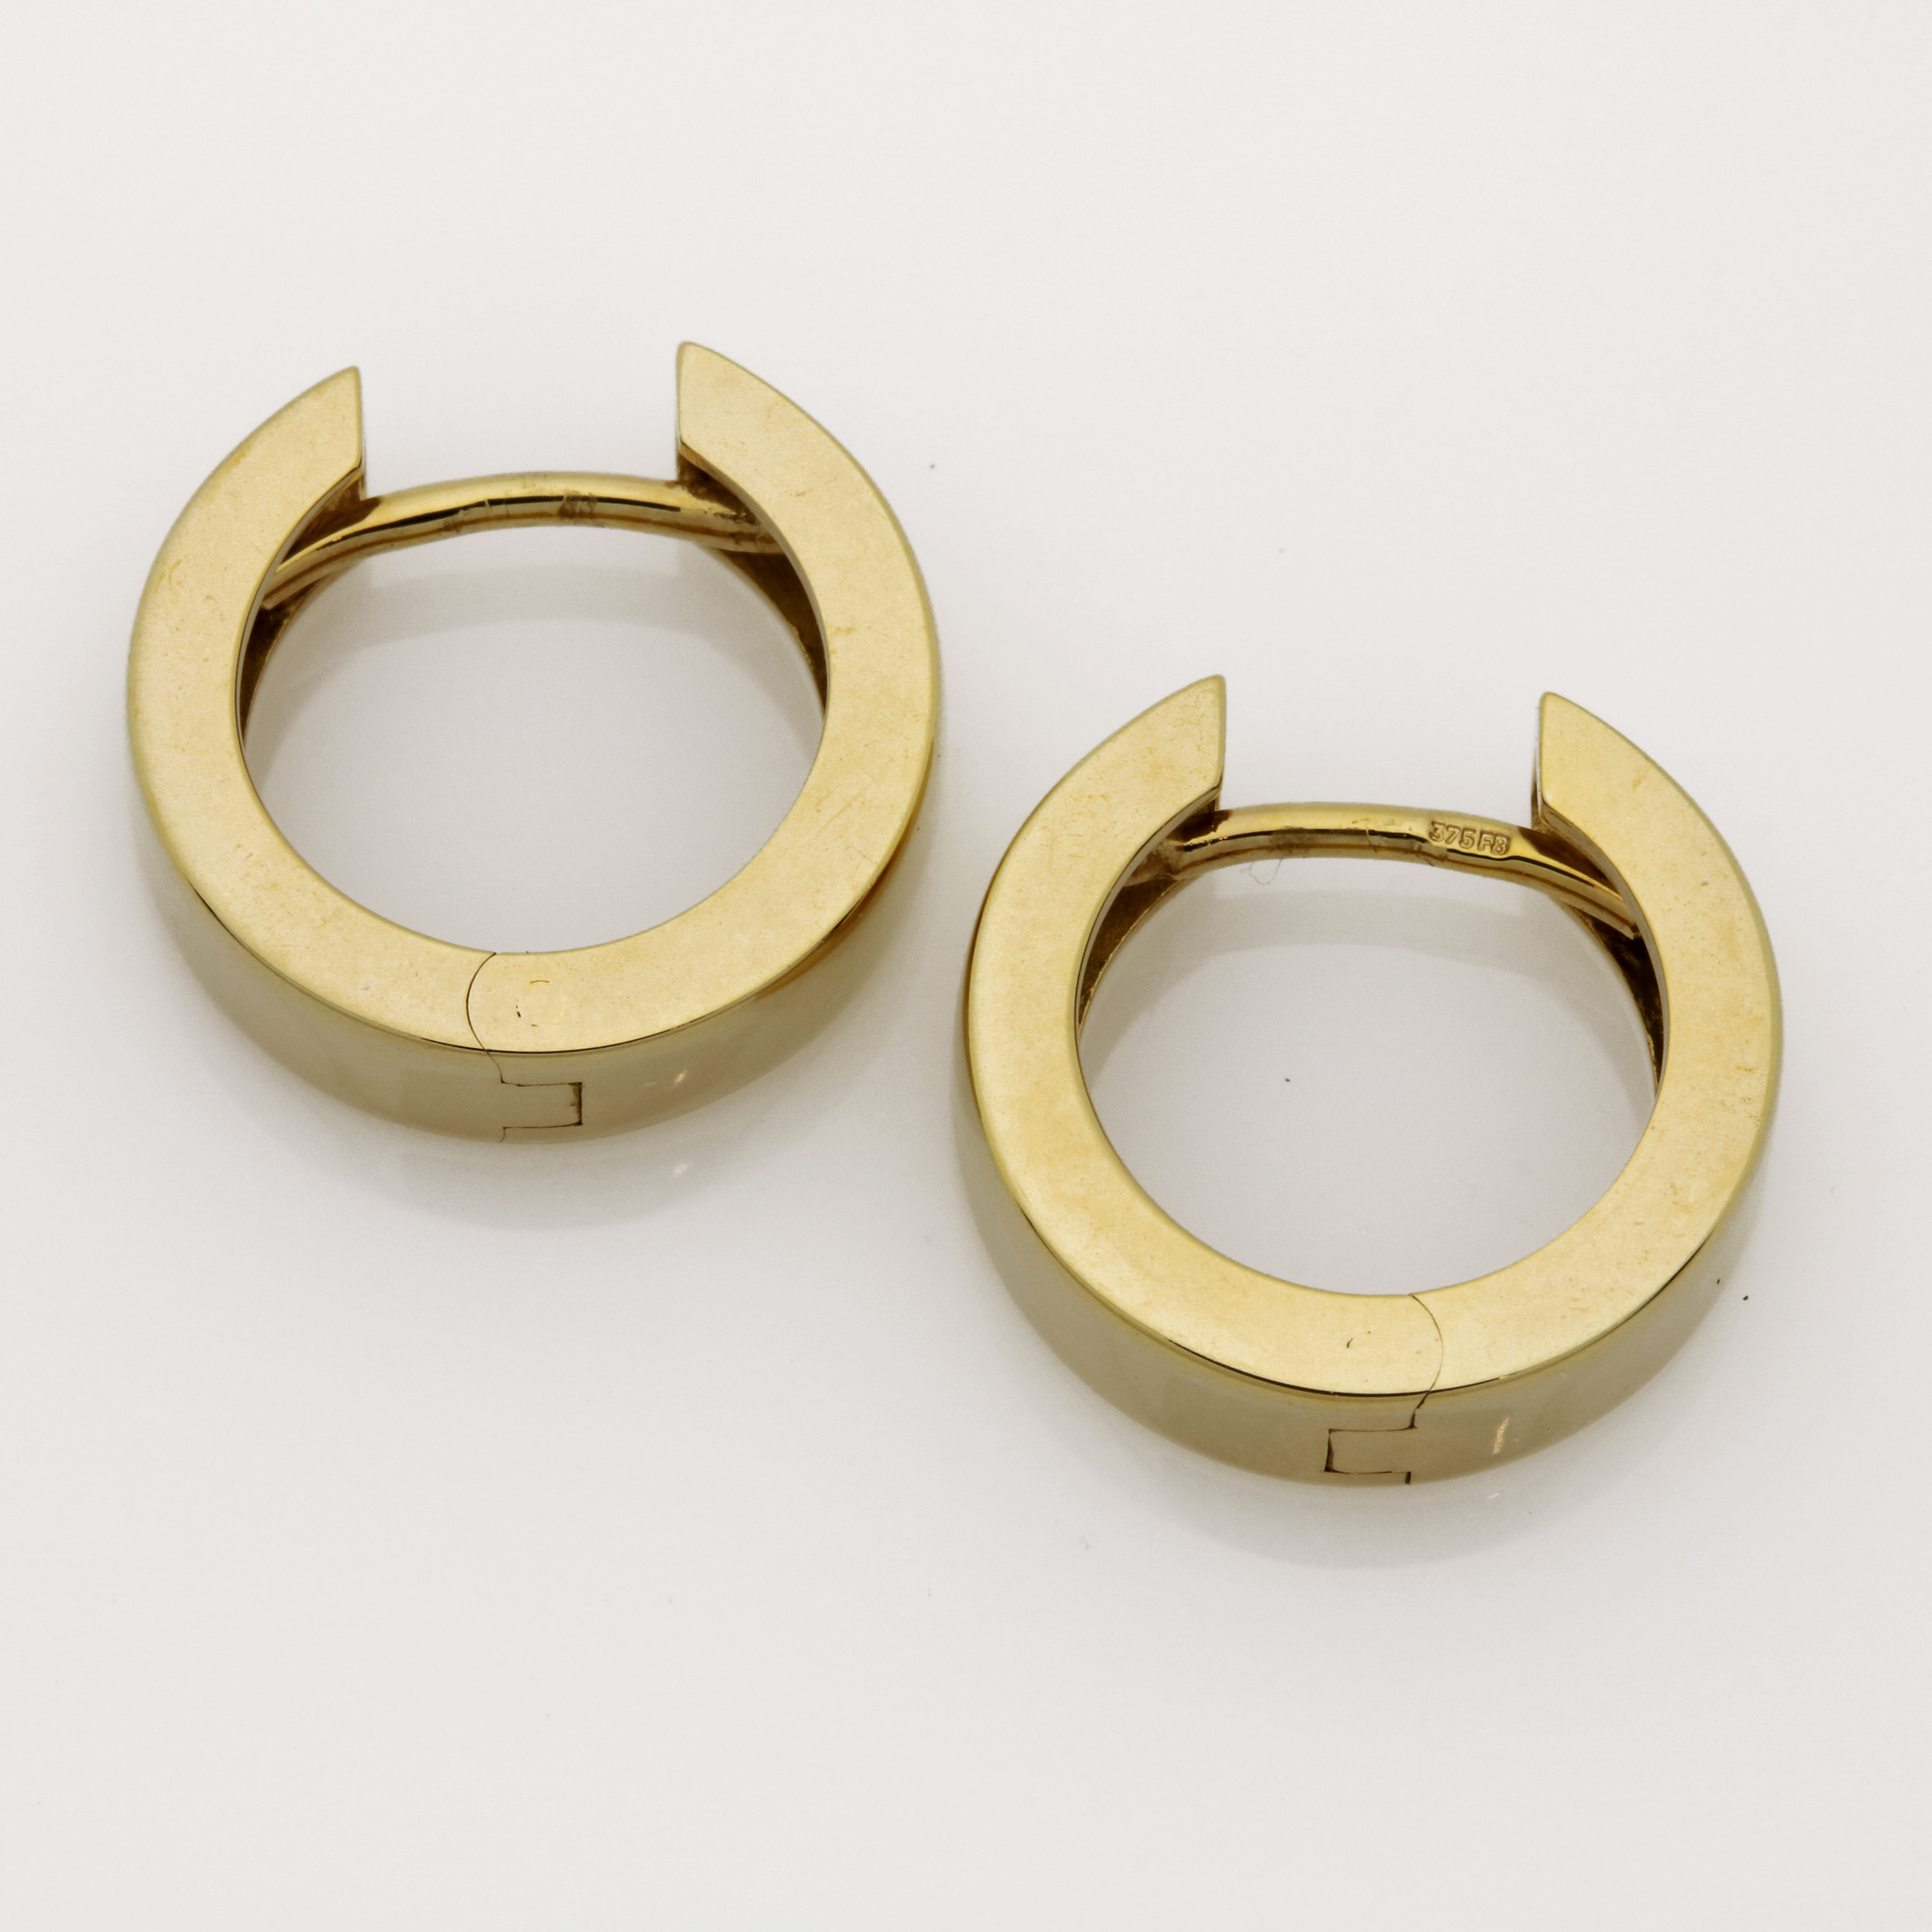 E0208 9ct Yellow gold huggies earrings $495